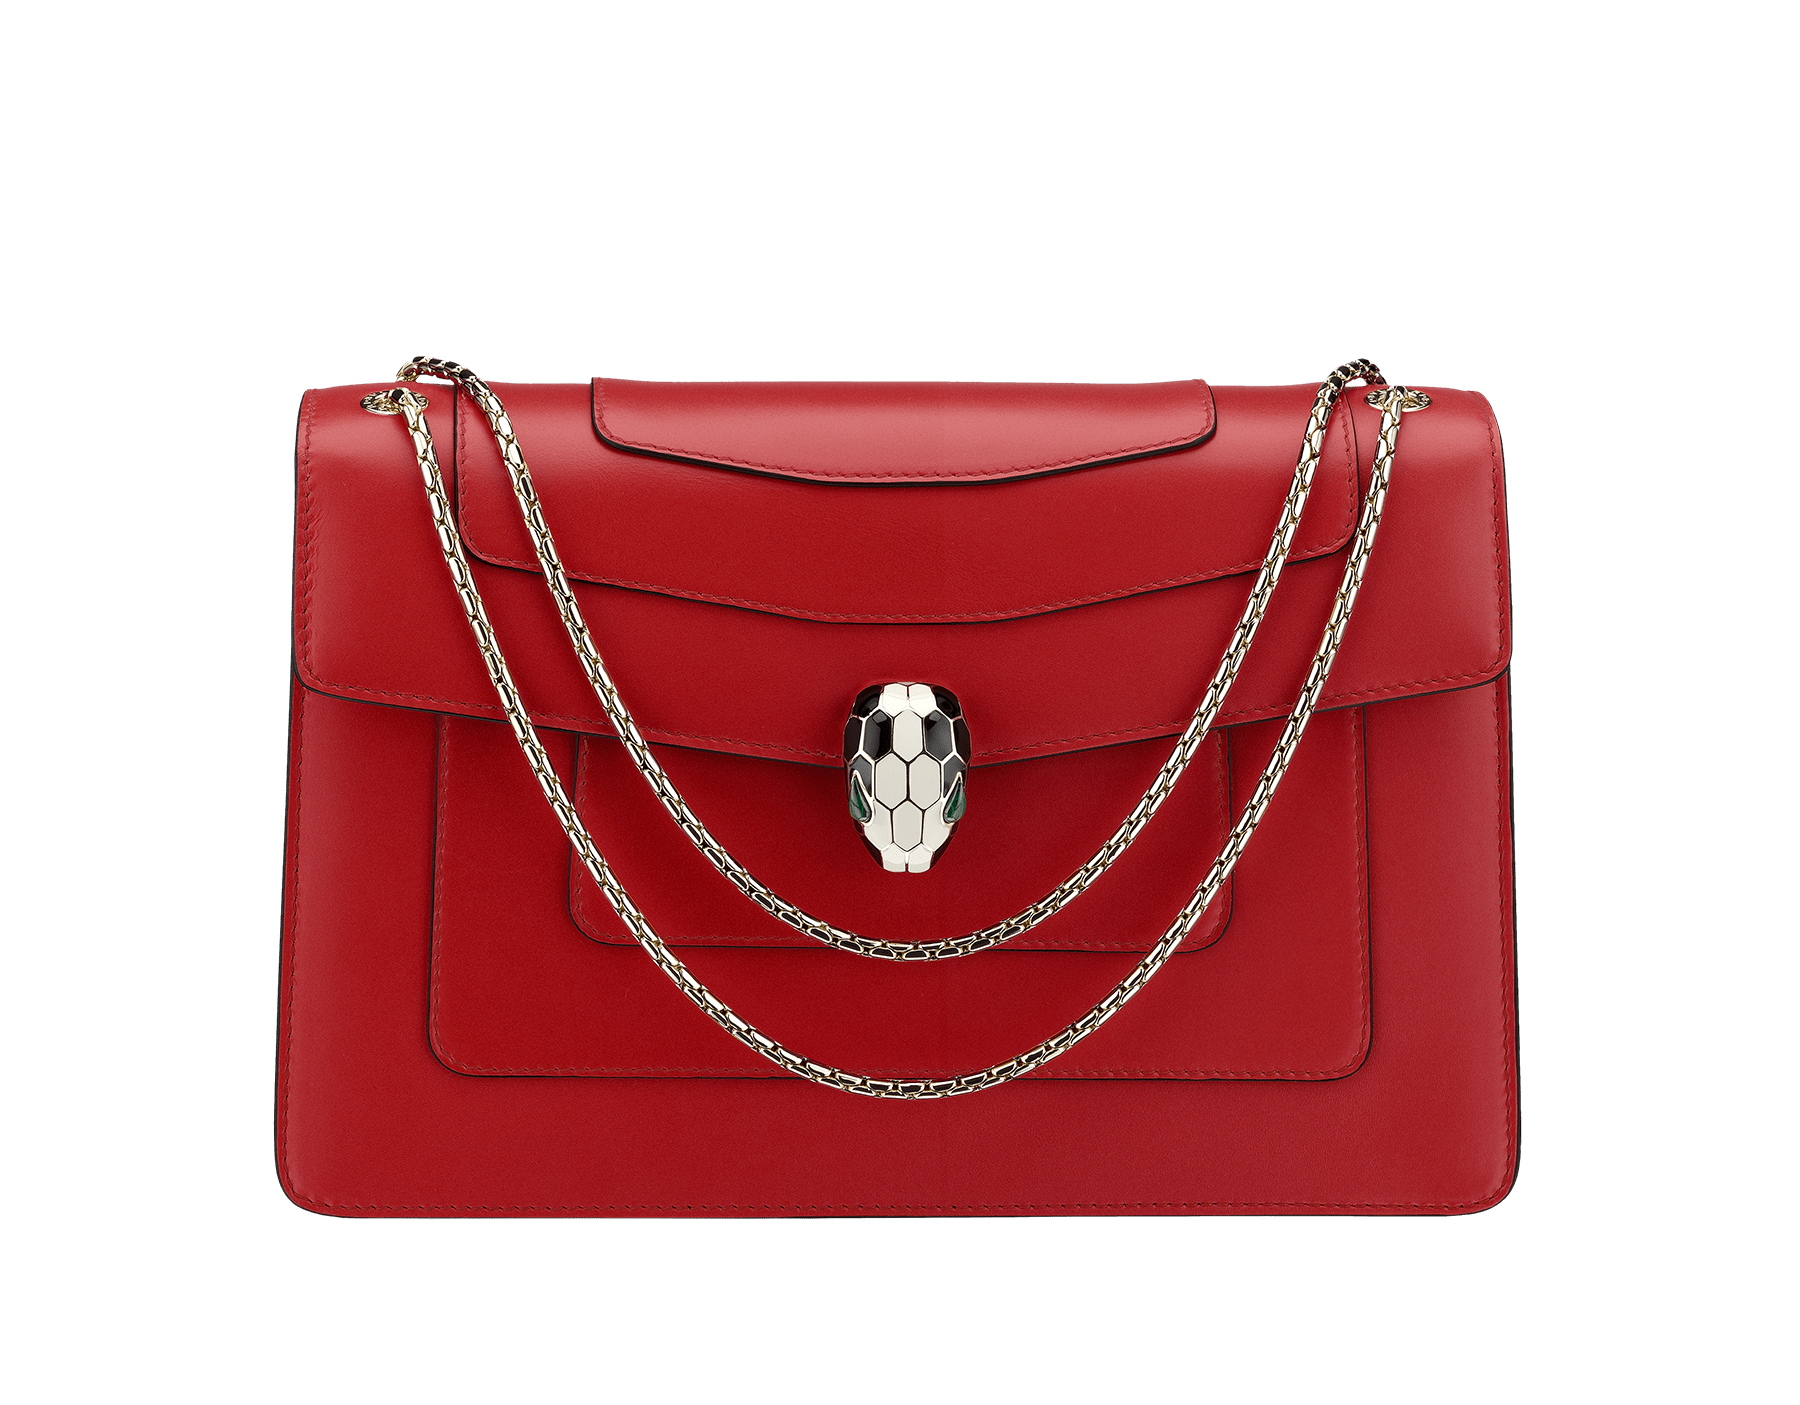 Flap cover bag Serpenti Forever in ruby red calf leather. Brass light gold plated snake head closure. 280153 image 1